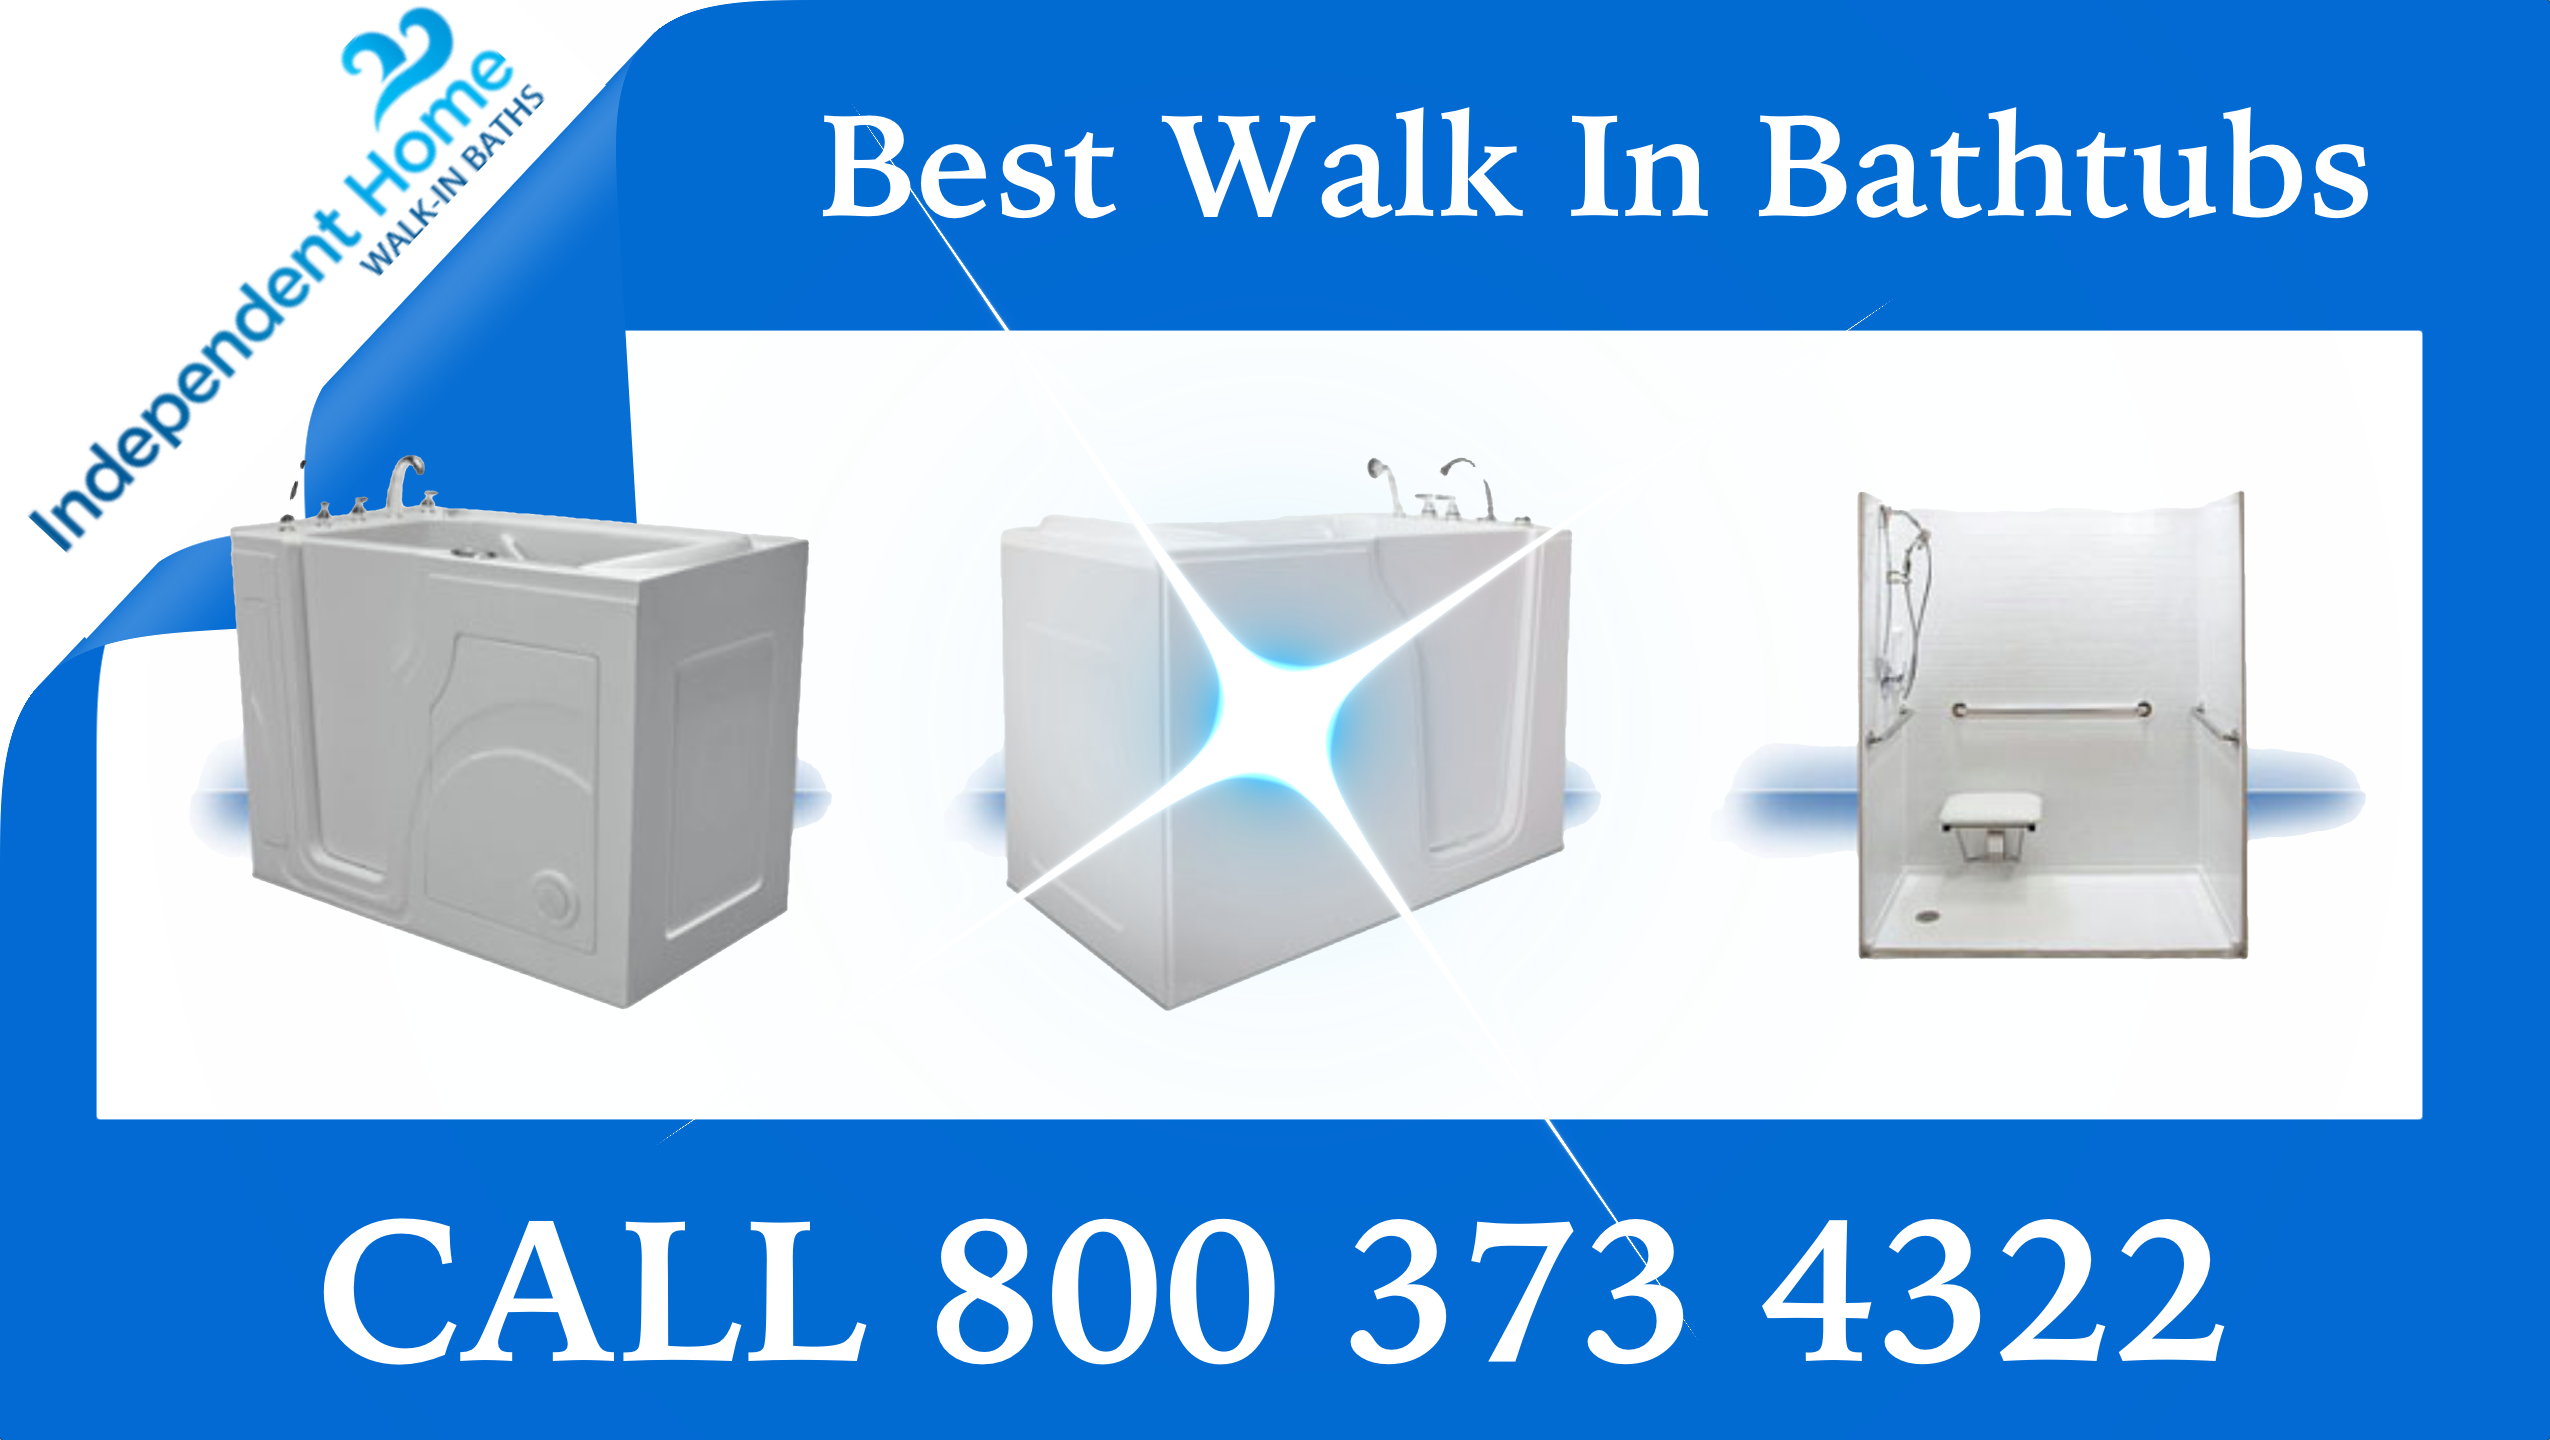 walk in tubs, walk in tub, walk in bathtub, walk in bathtubs, best walk in tub, best walk in bathtubs, http://best-tubs.com